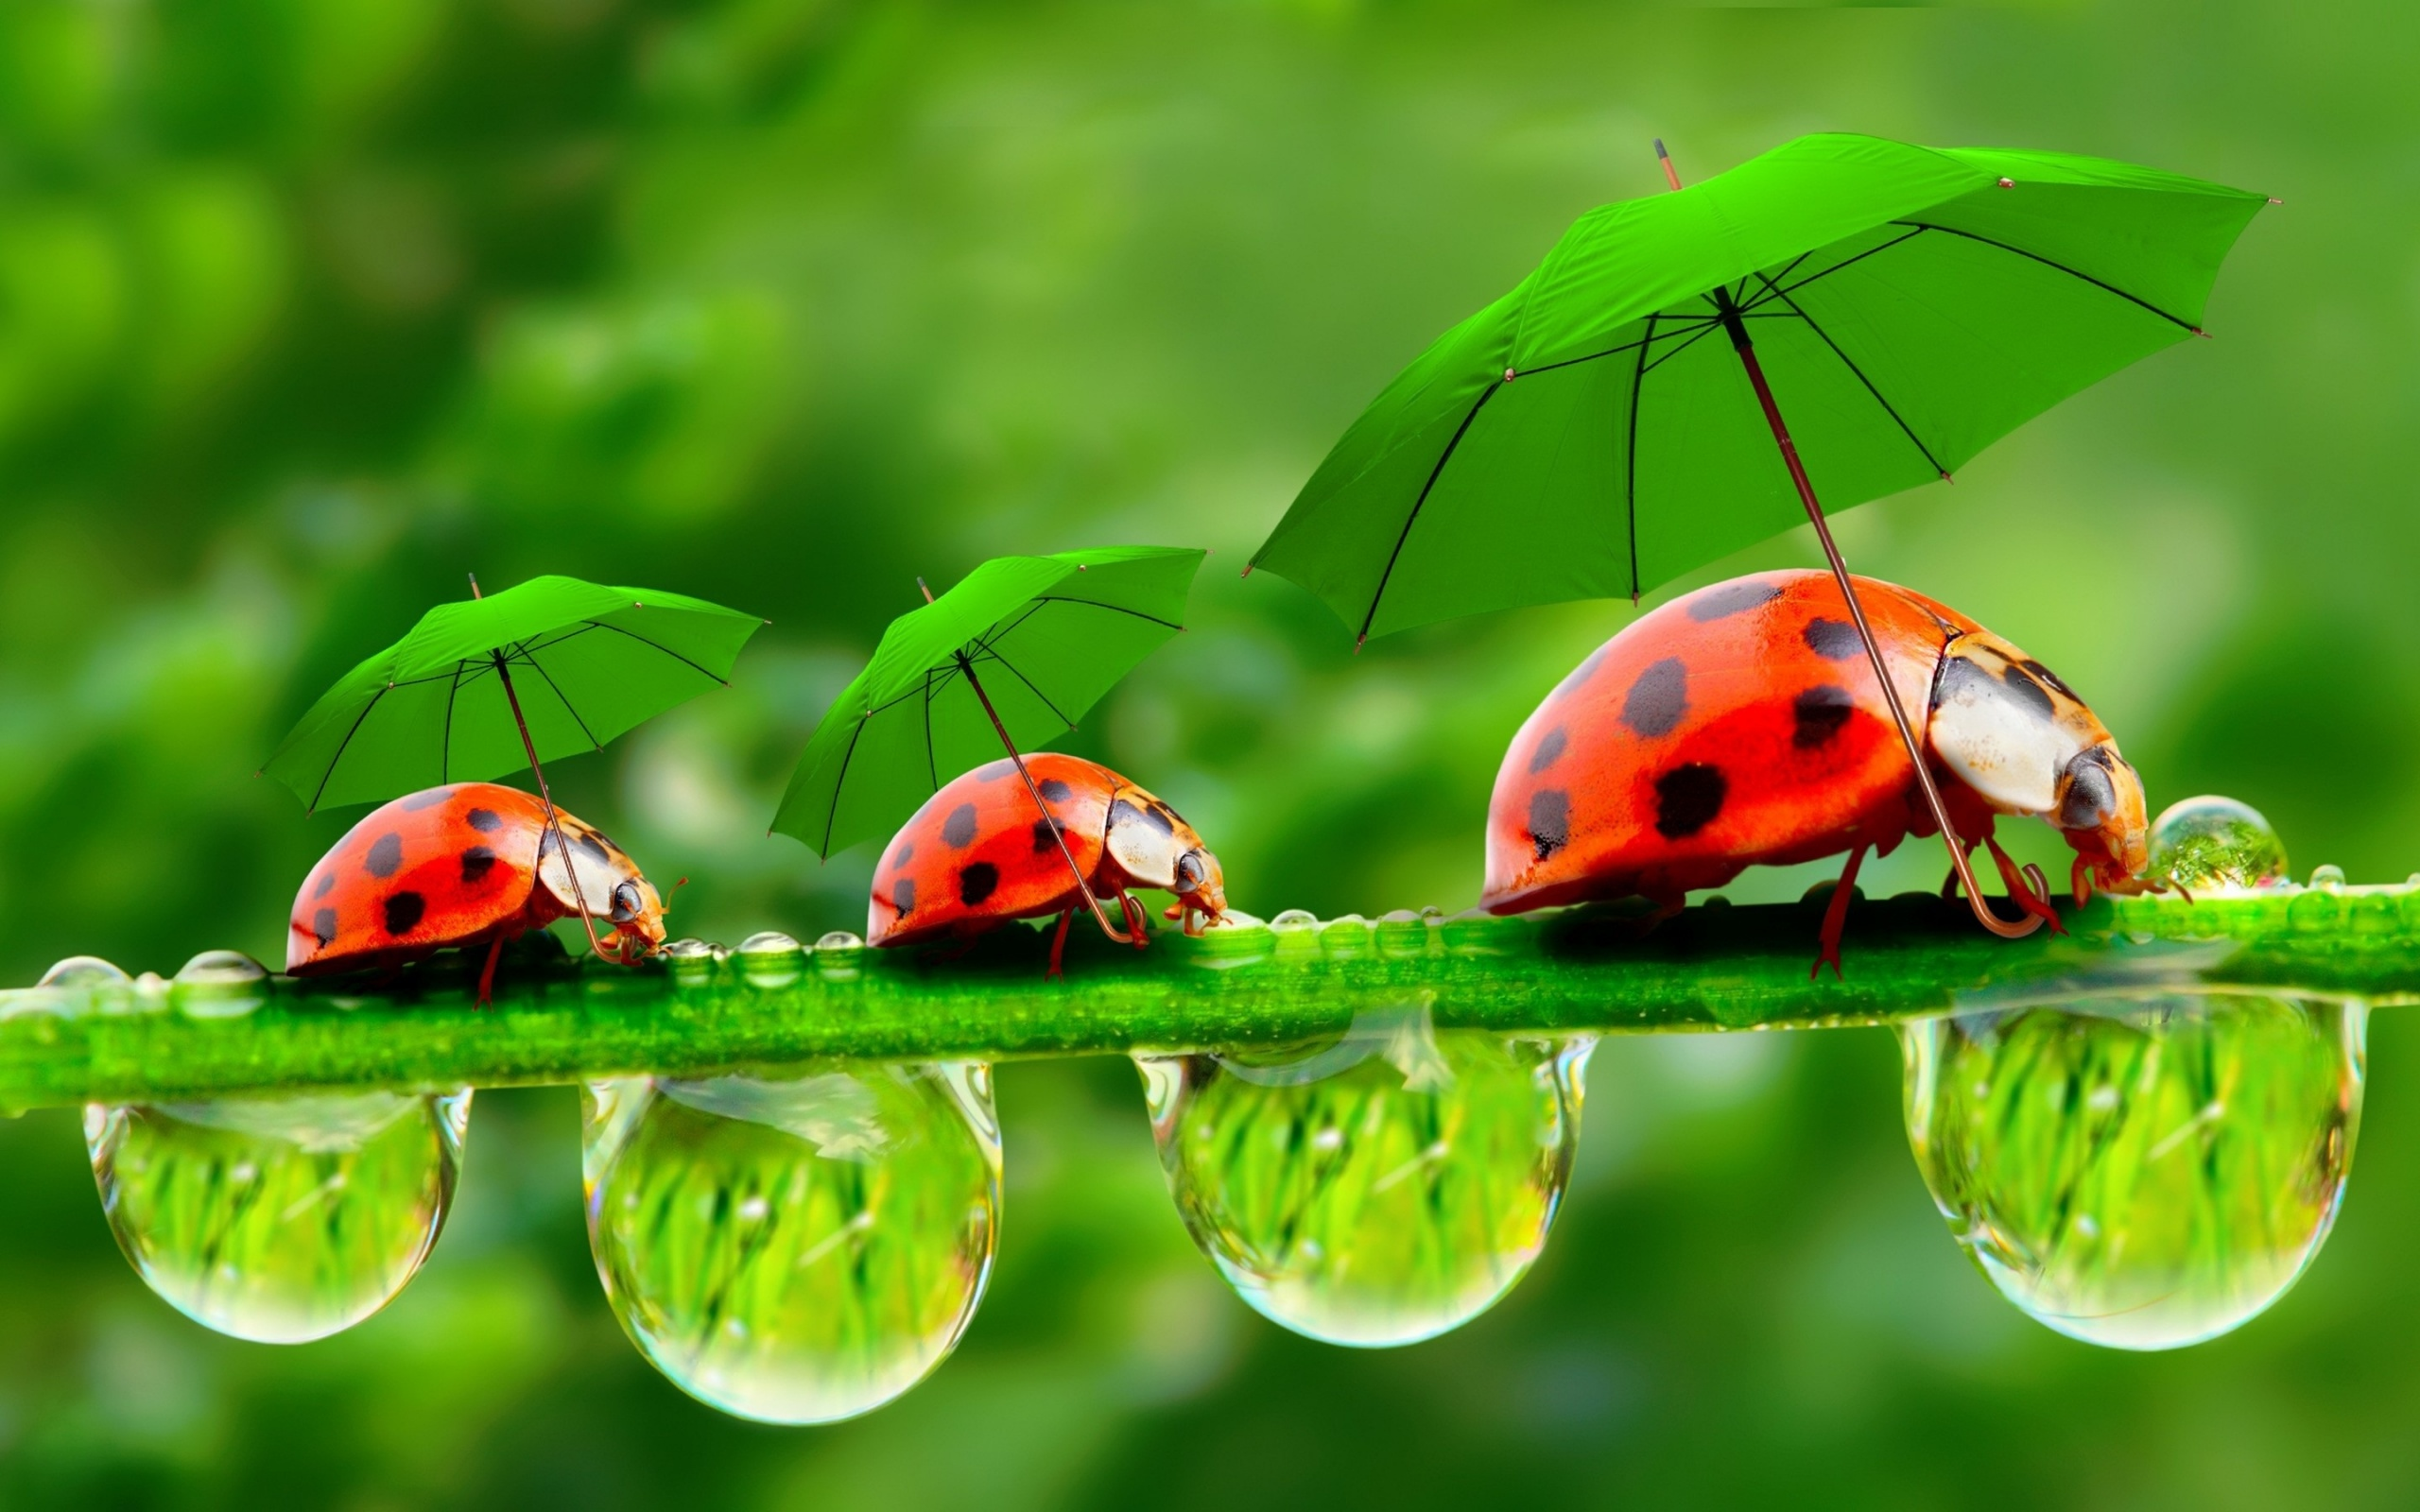 Funny Ladybugs With Umbrellas